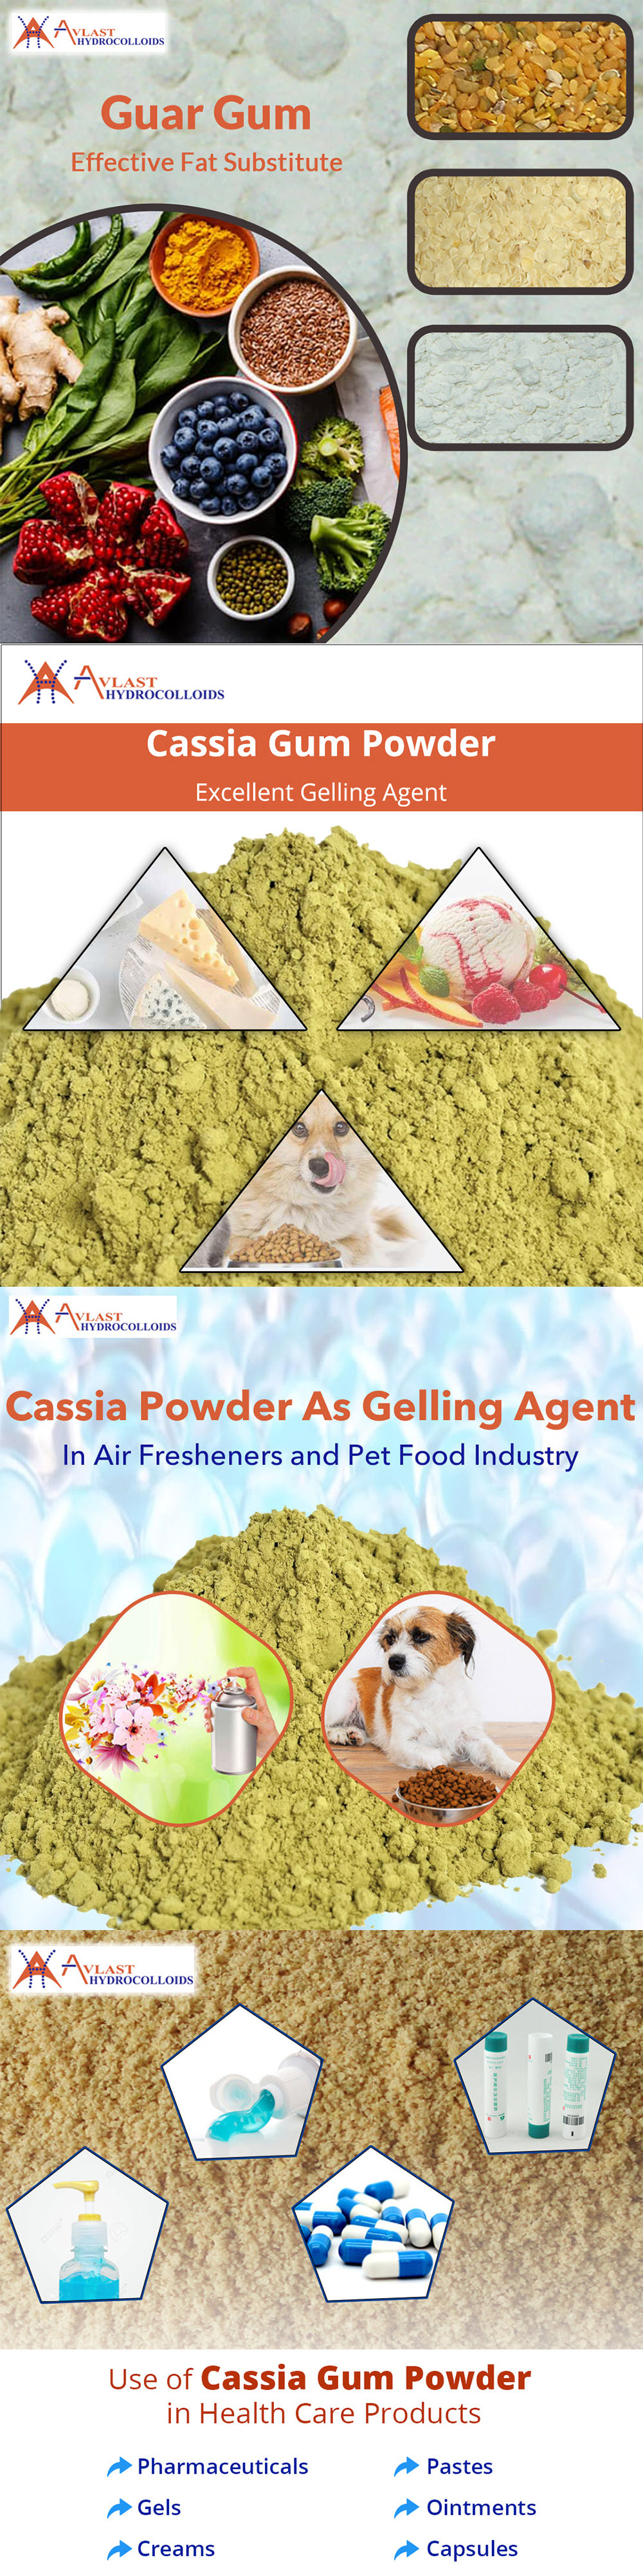 Applications of Cassia Gum Powder in Industries